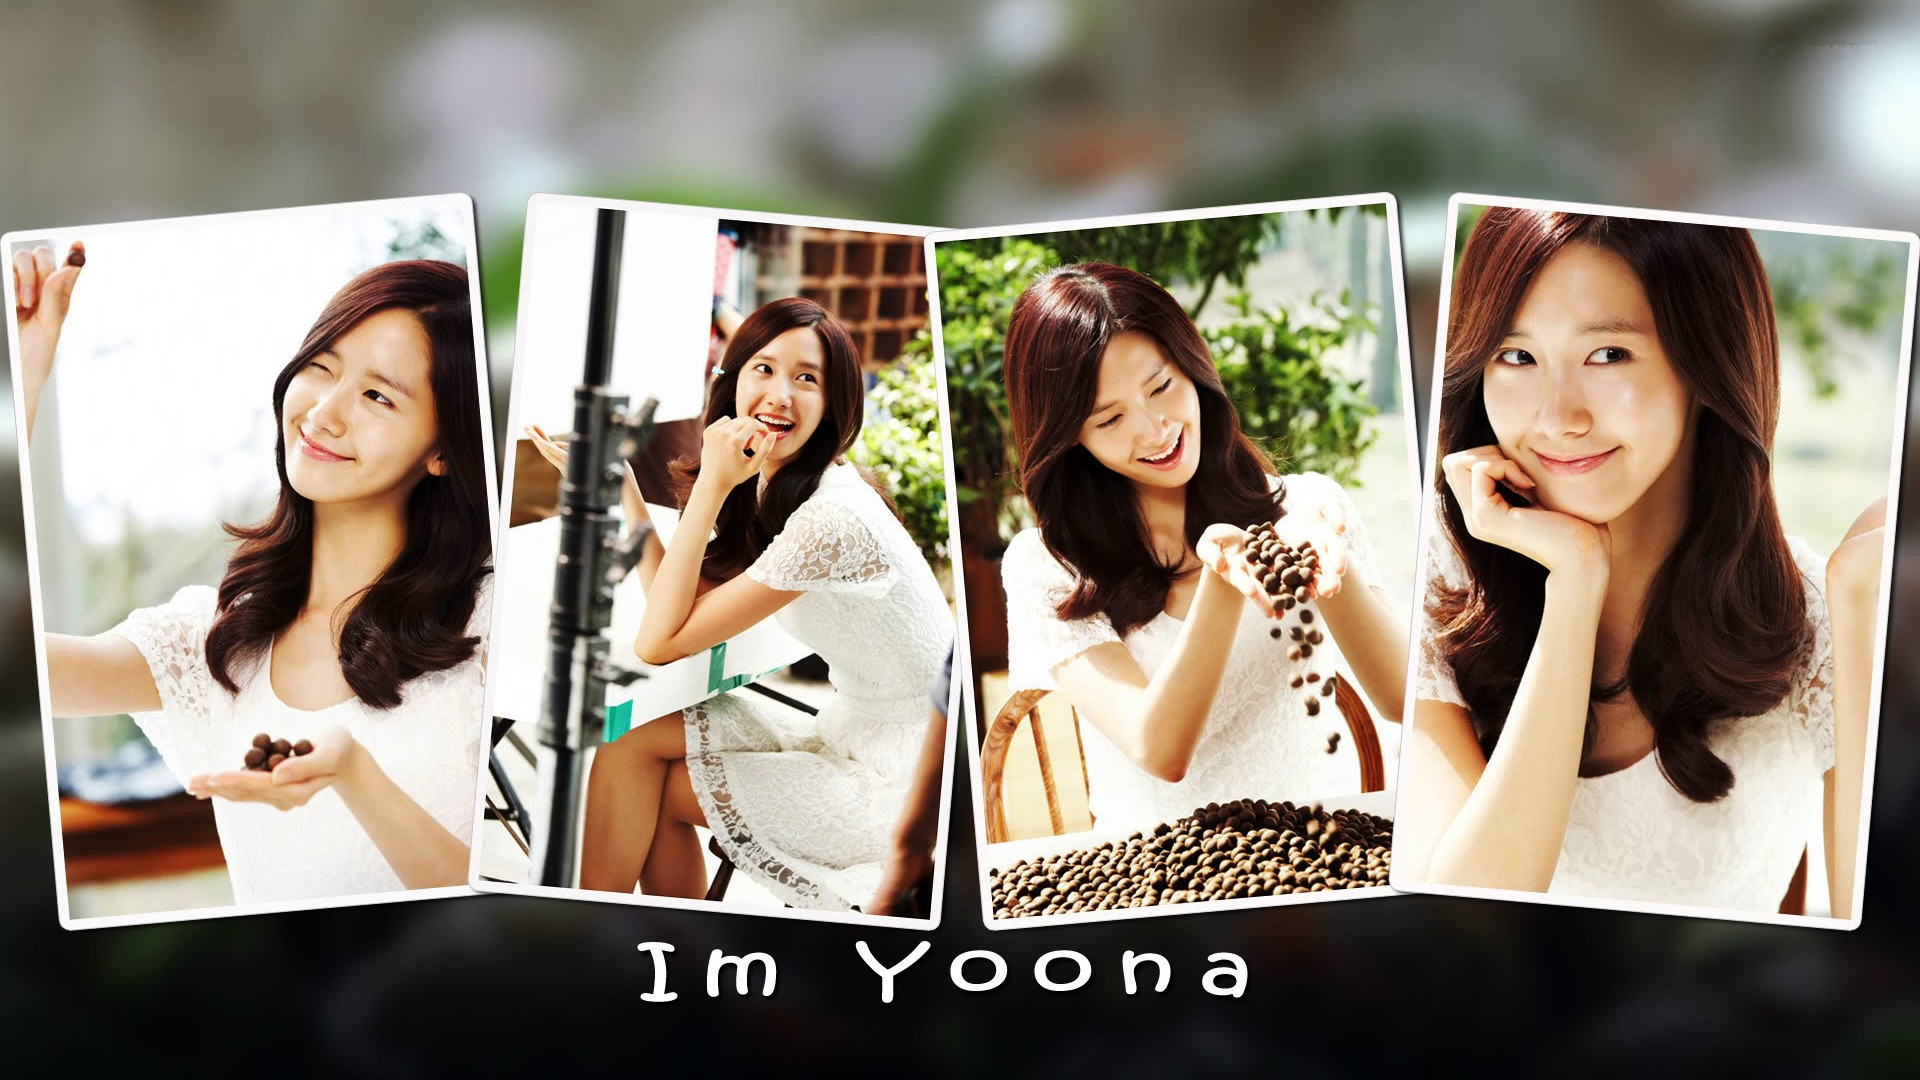 HD Im Yoona 3 Wallpapers   hd wallpaper 1920x1080